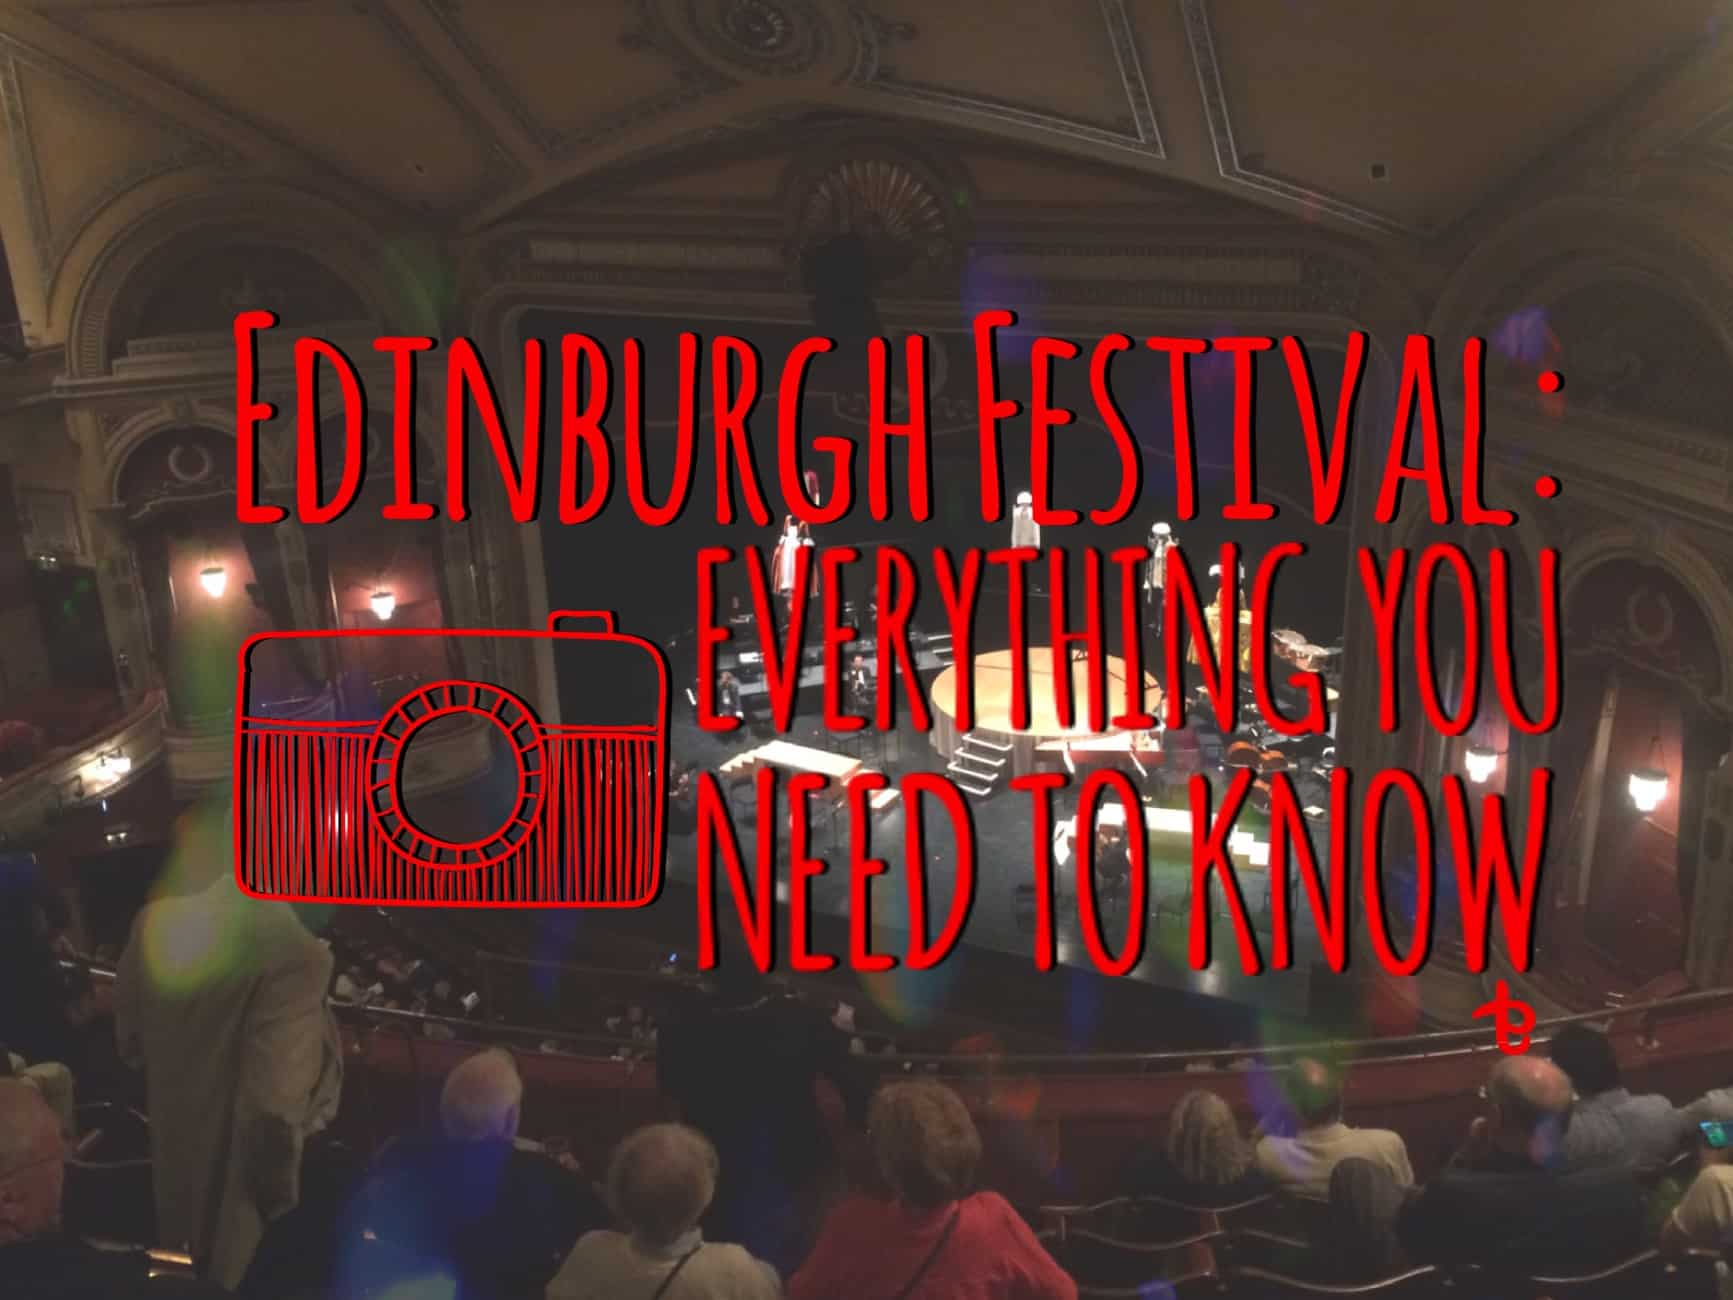 Everything you need to know before attending Edinburgh Festivals